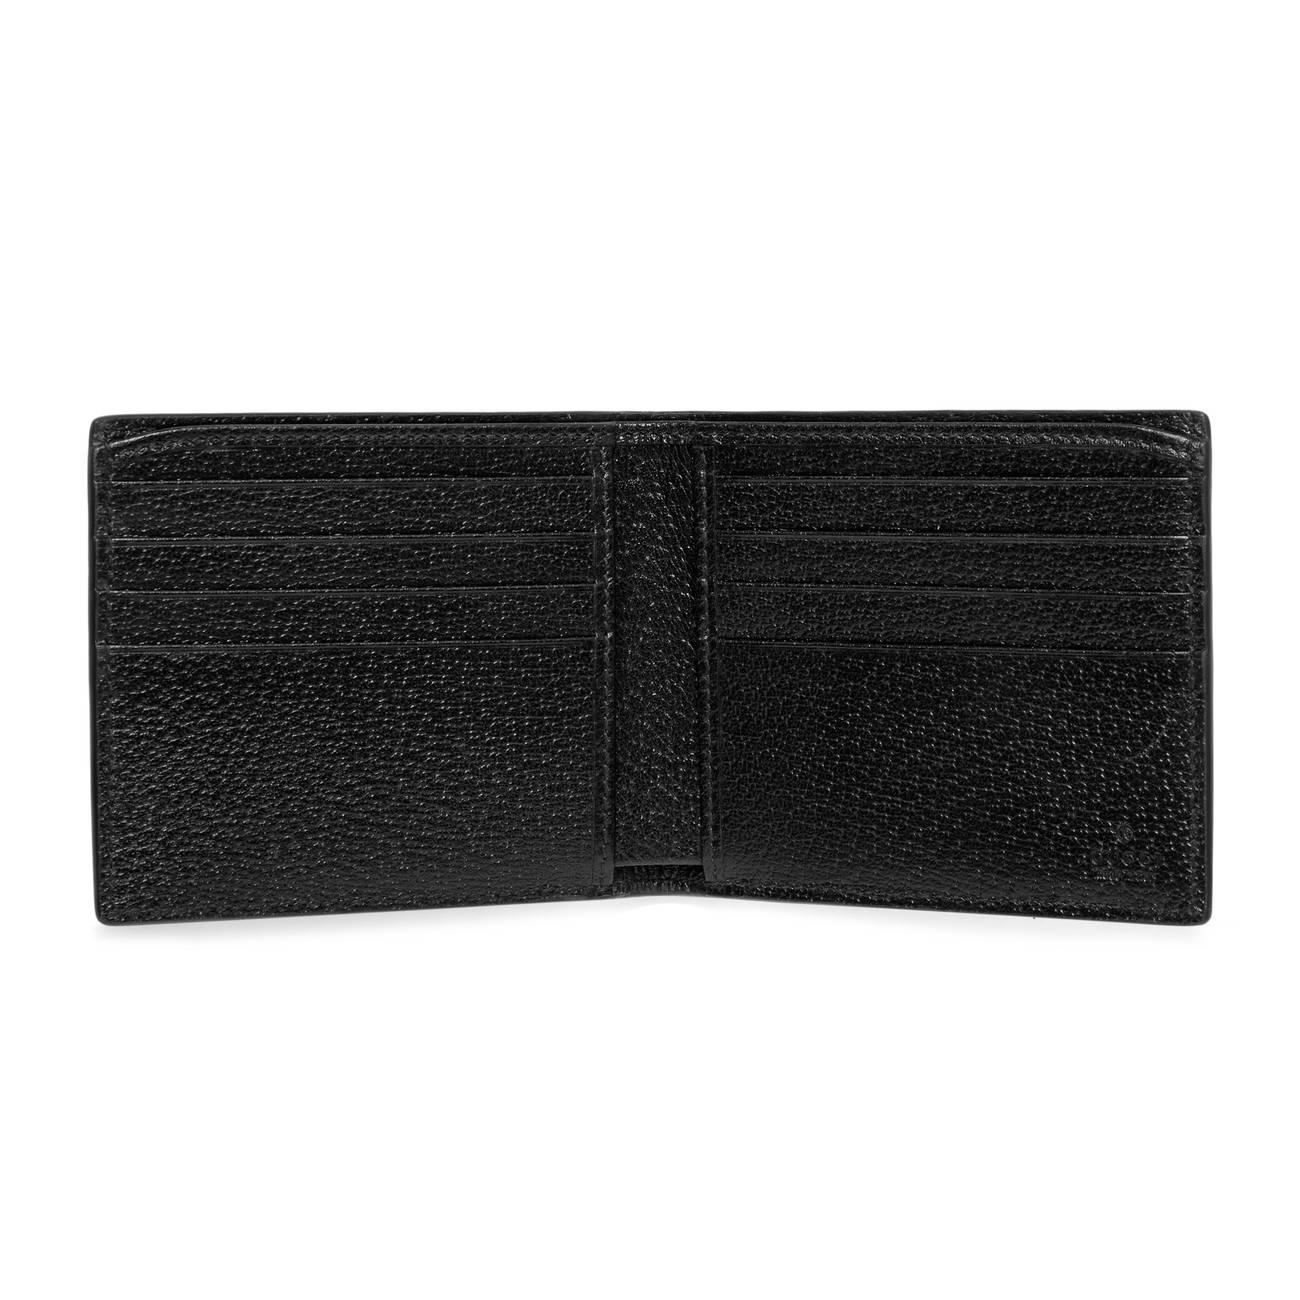 4b544474f88 ... lyst gucci animalier leather wallet in black for men save 23 ...